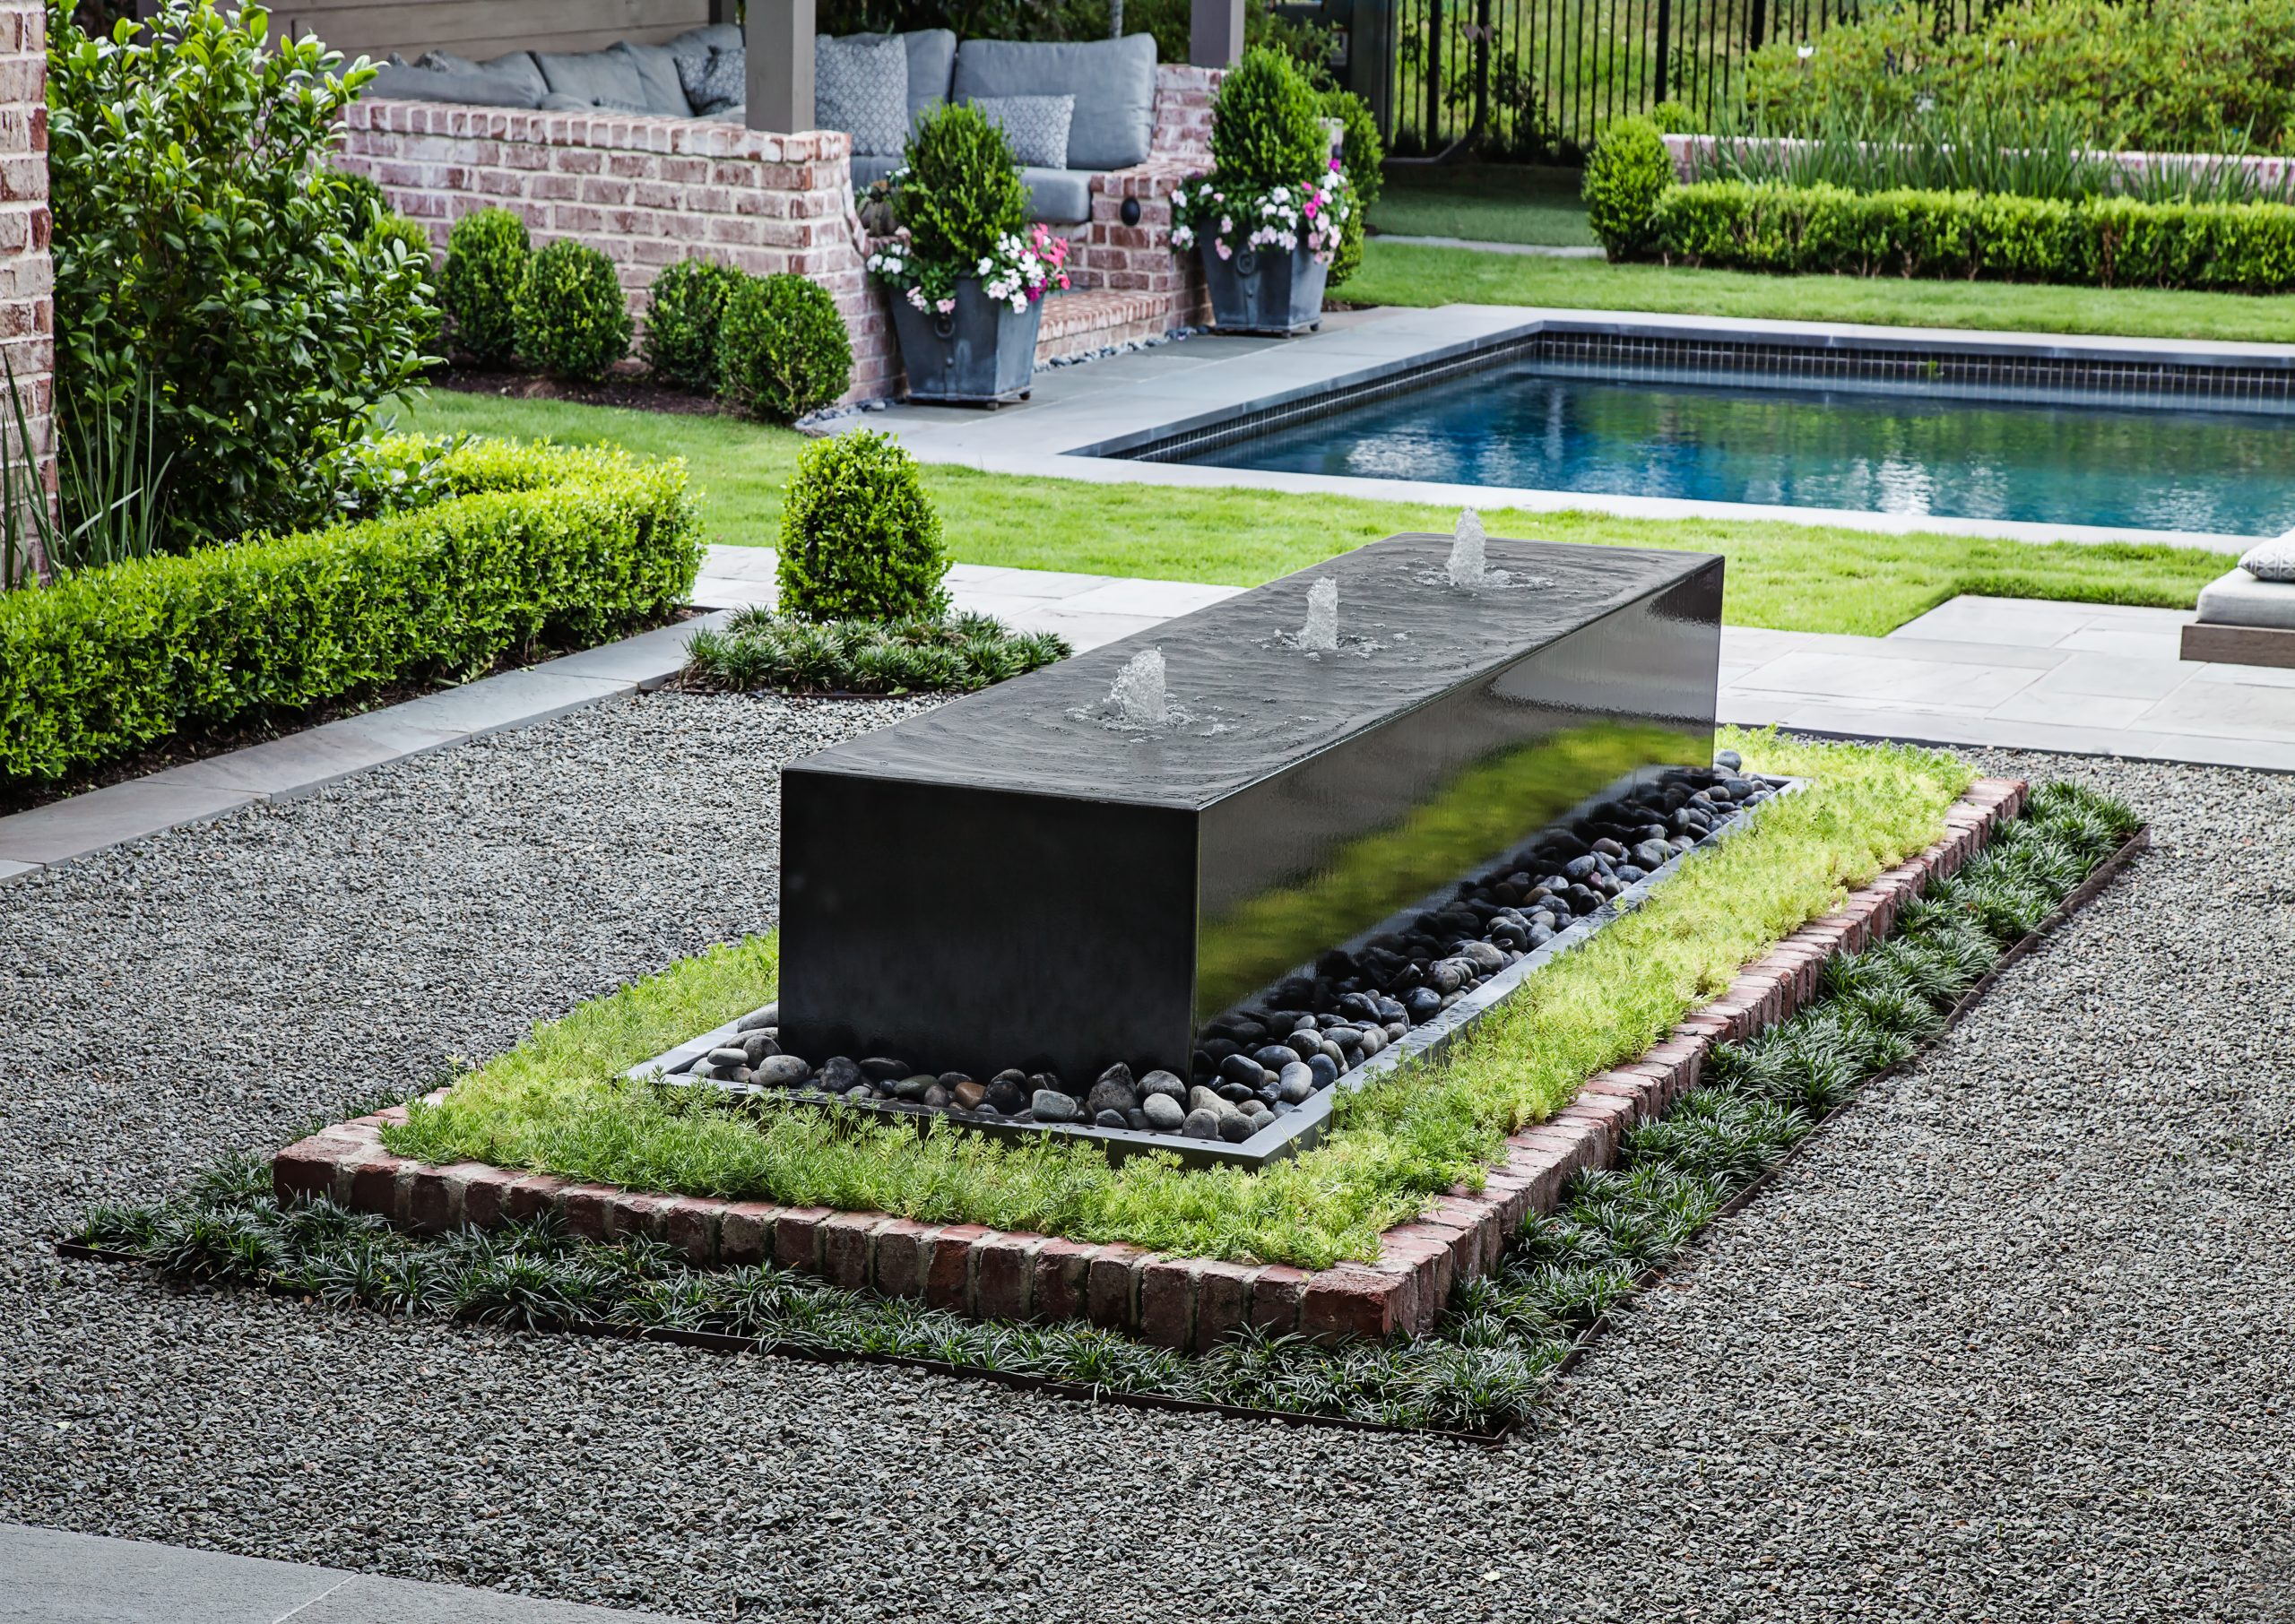 Pool and Landscaping Design in Houston, Texas